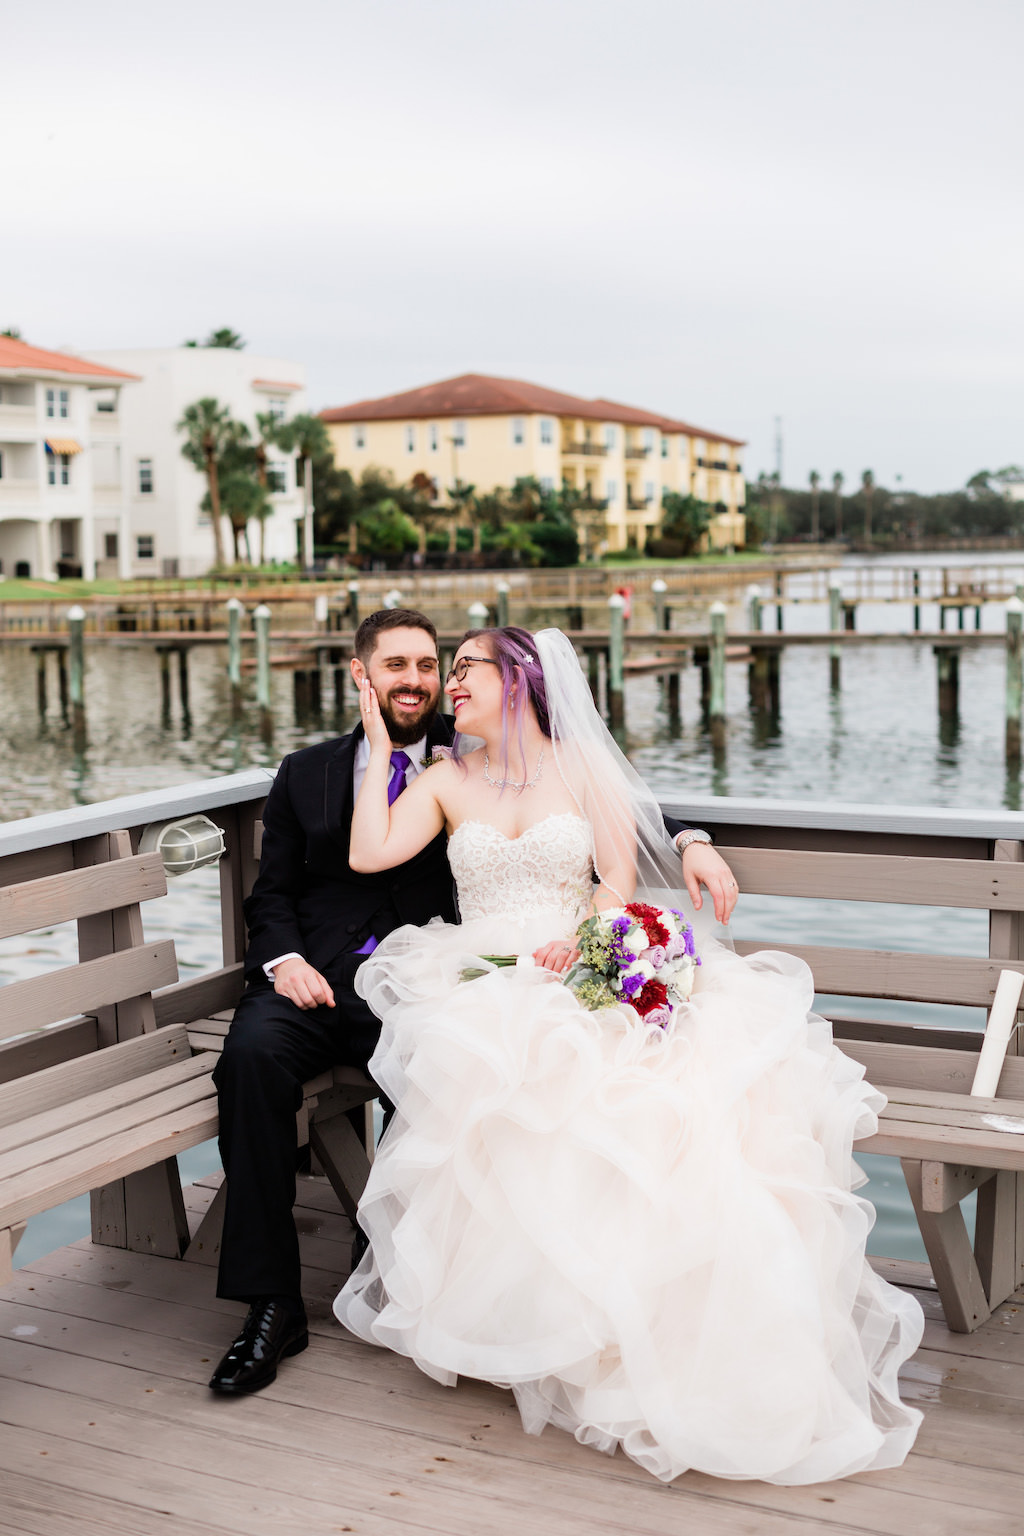 Modern, Romantic Florida Bride in Ballgown Wedding Dress, Unique Wedding Style with Purple Hair and Glasses, Holding Whimsical Bridal Bouquet, Purple, Ivory, White, Red, Flowers with Greenery | Tampa Bay Waterfront Wedding Venue Beso Del Sol